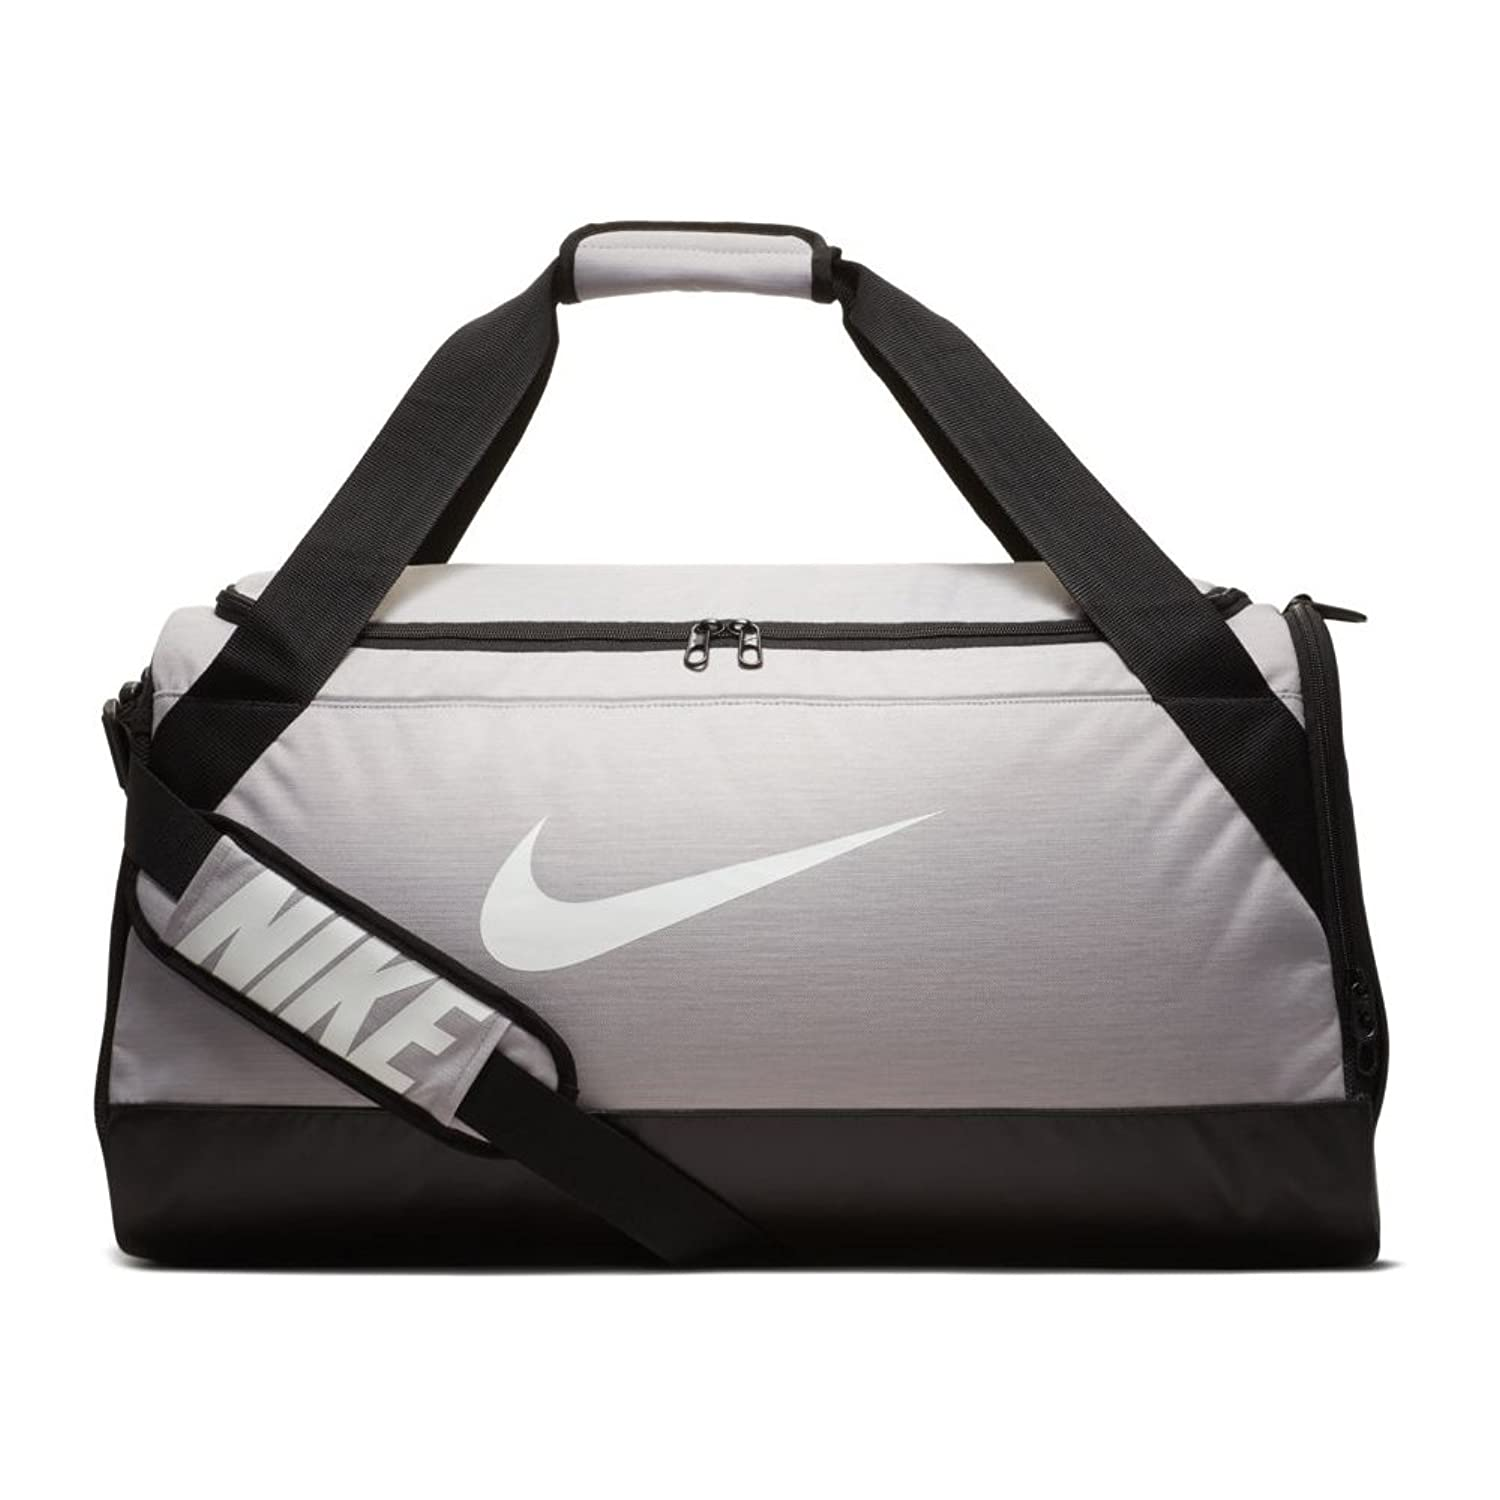 9b636ebc3ff6 Nike Brasilia Duffel Bag Small Amazon